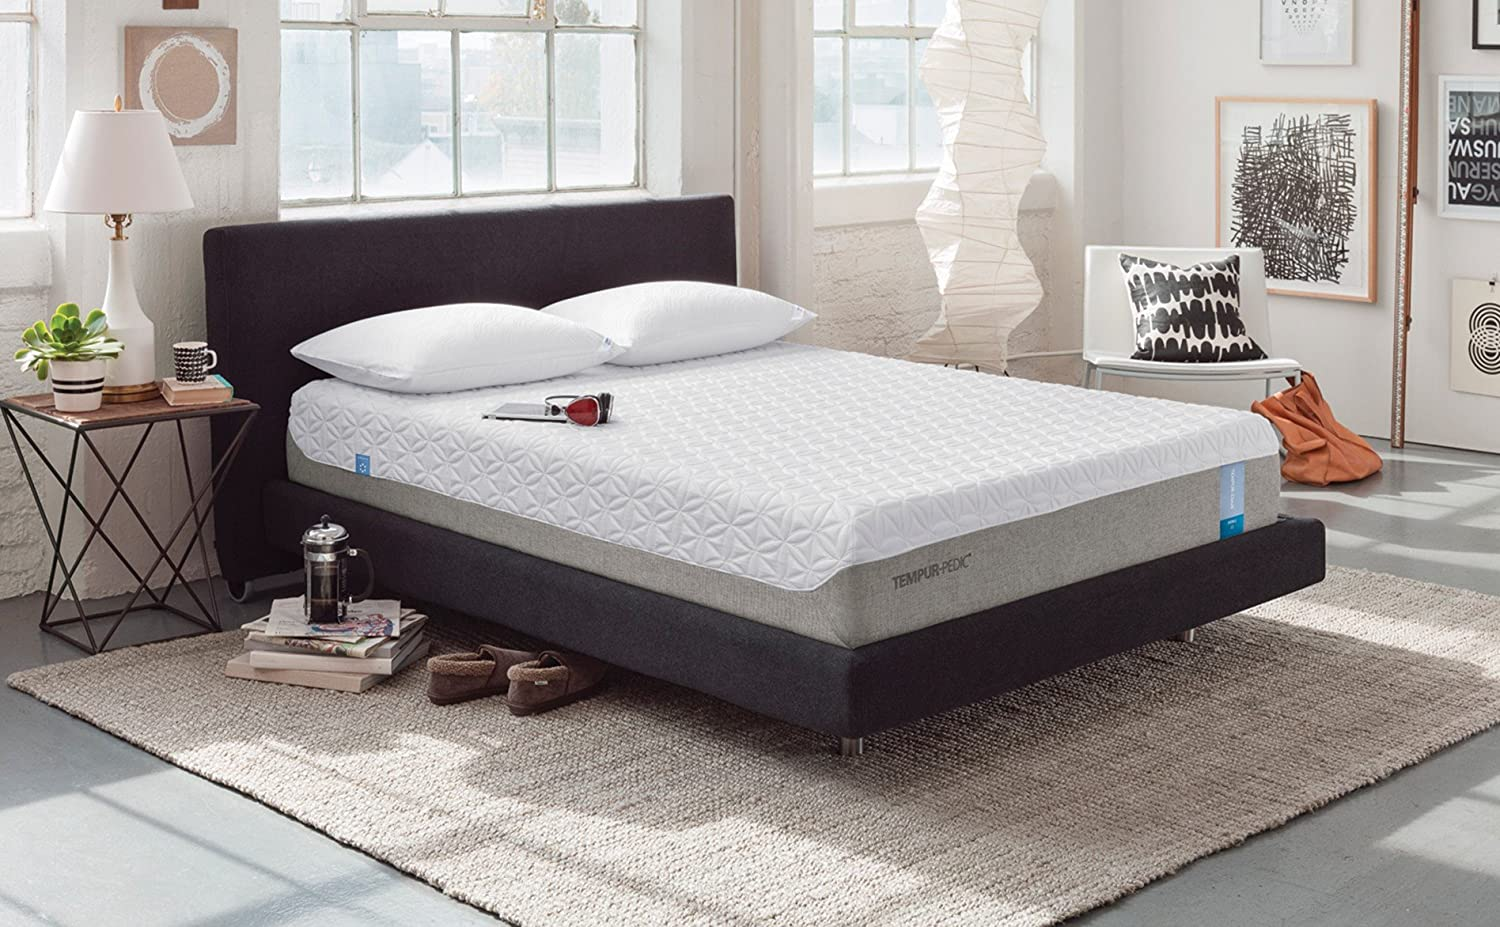 Tempur Pedic Vs Simmons Beautyrest Mattresses Comparison